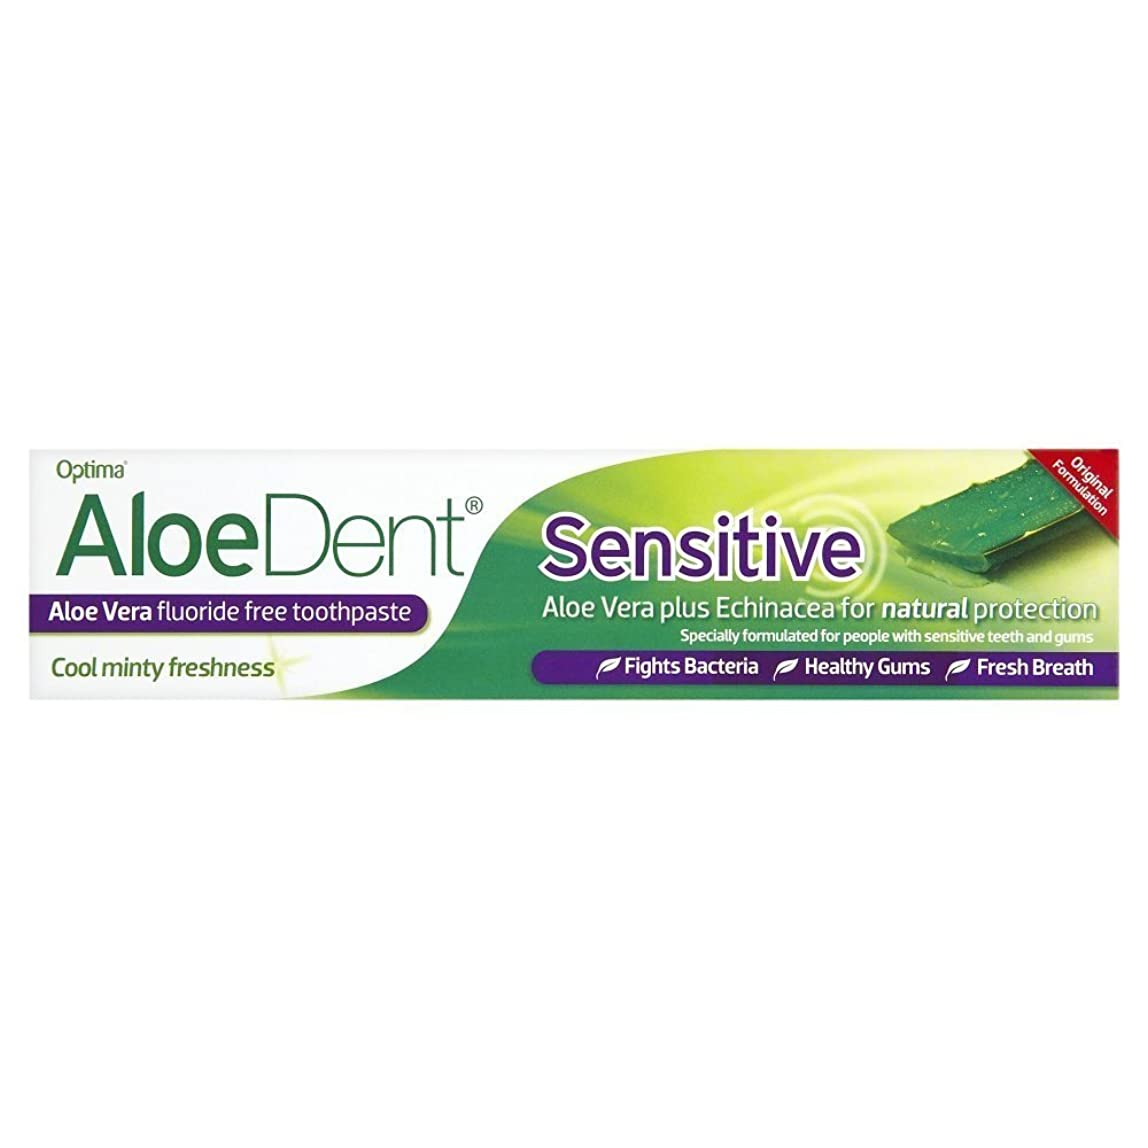 行動季節衰えるAloeDent 100 ml Sensitive Aloe Vera Fluoride Free Toothpaste by Aloe Dent